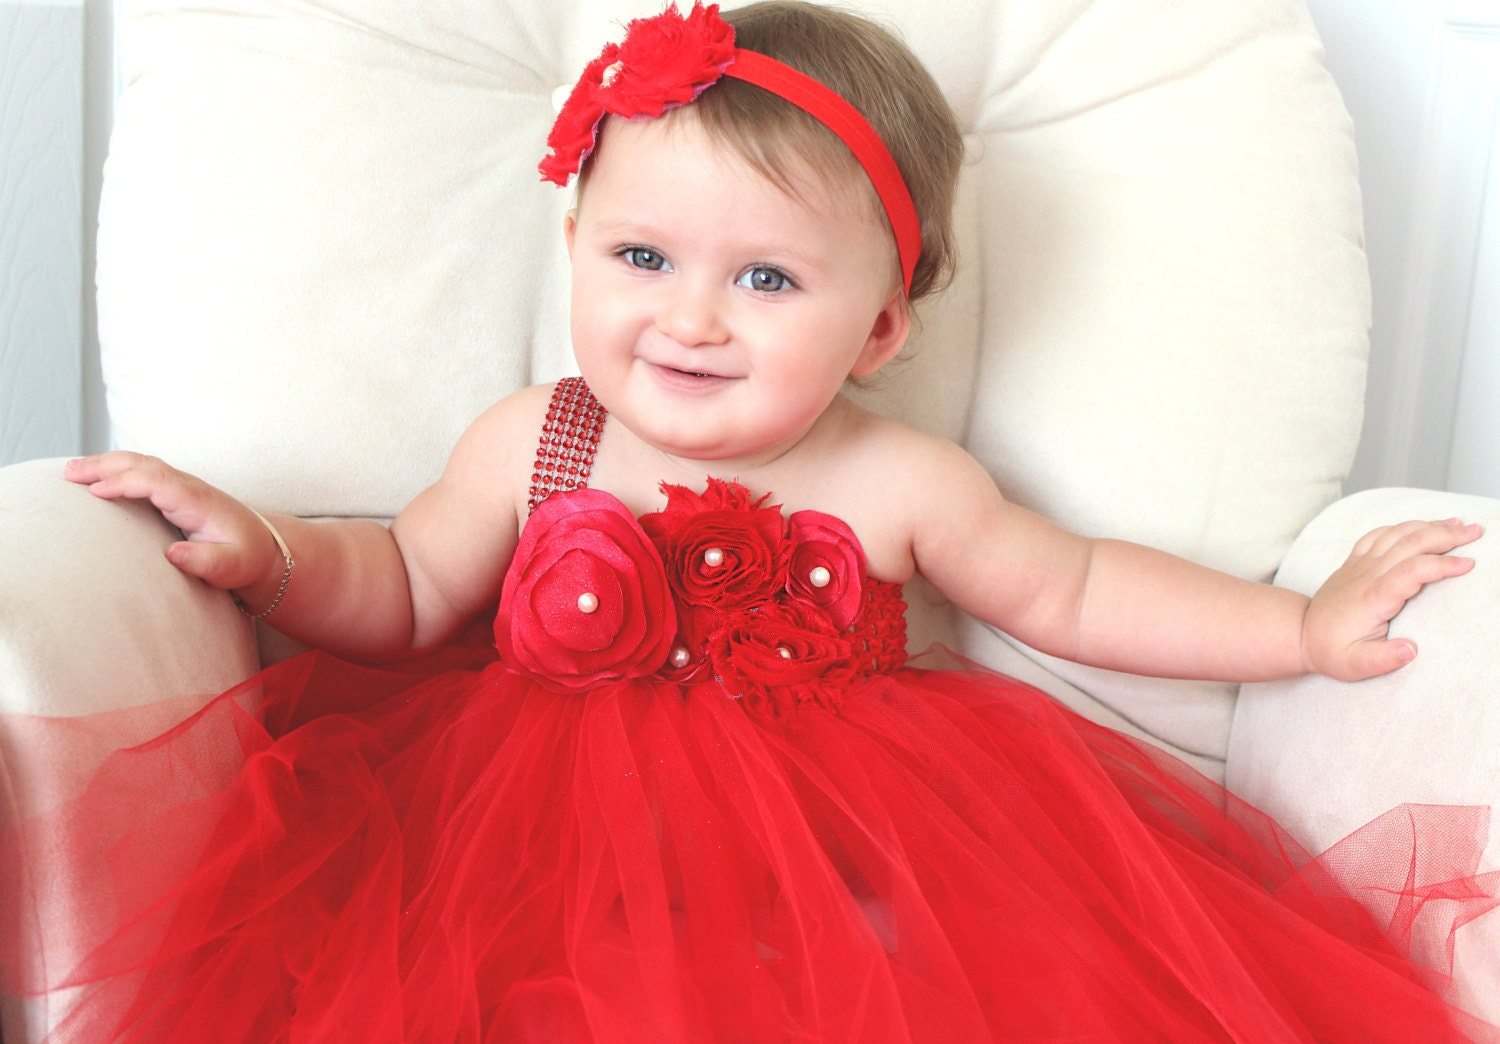 Beautiful Red Satin Shabby Chic Flower Tutu Dress For Baby